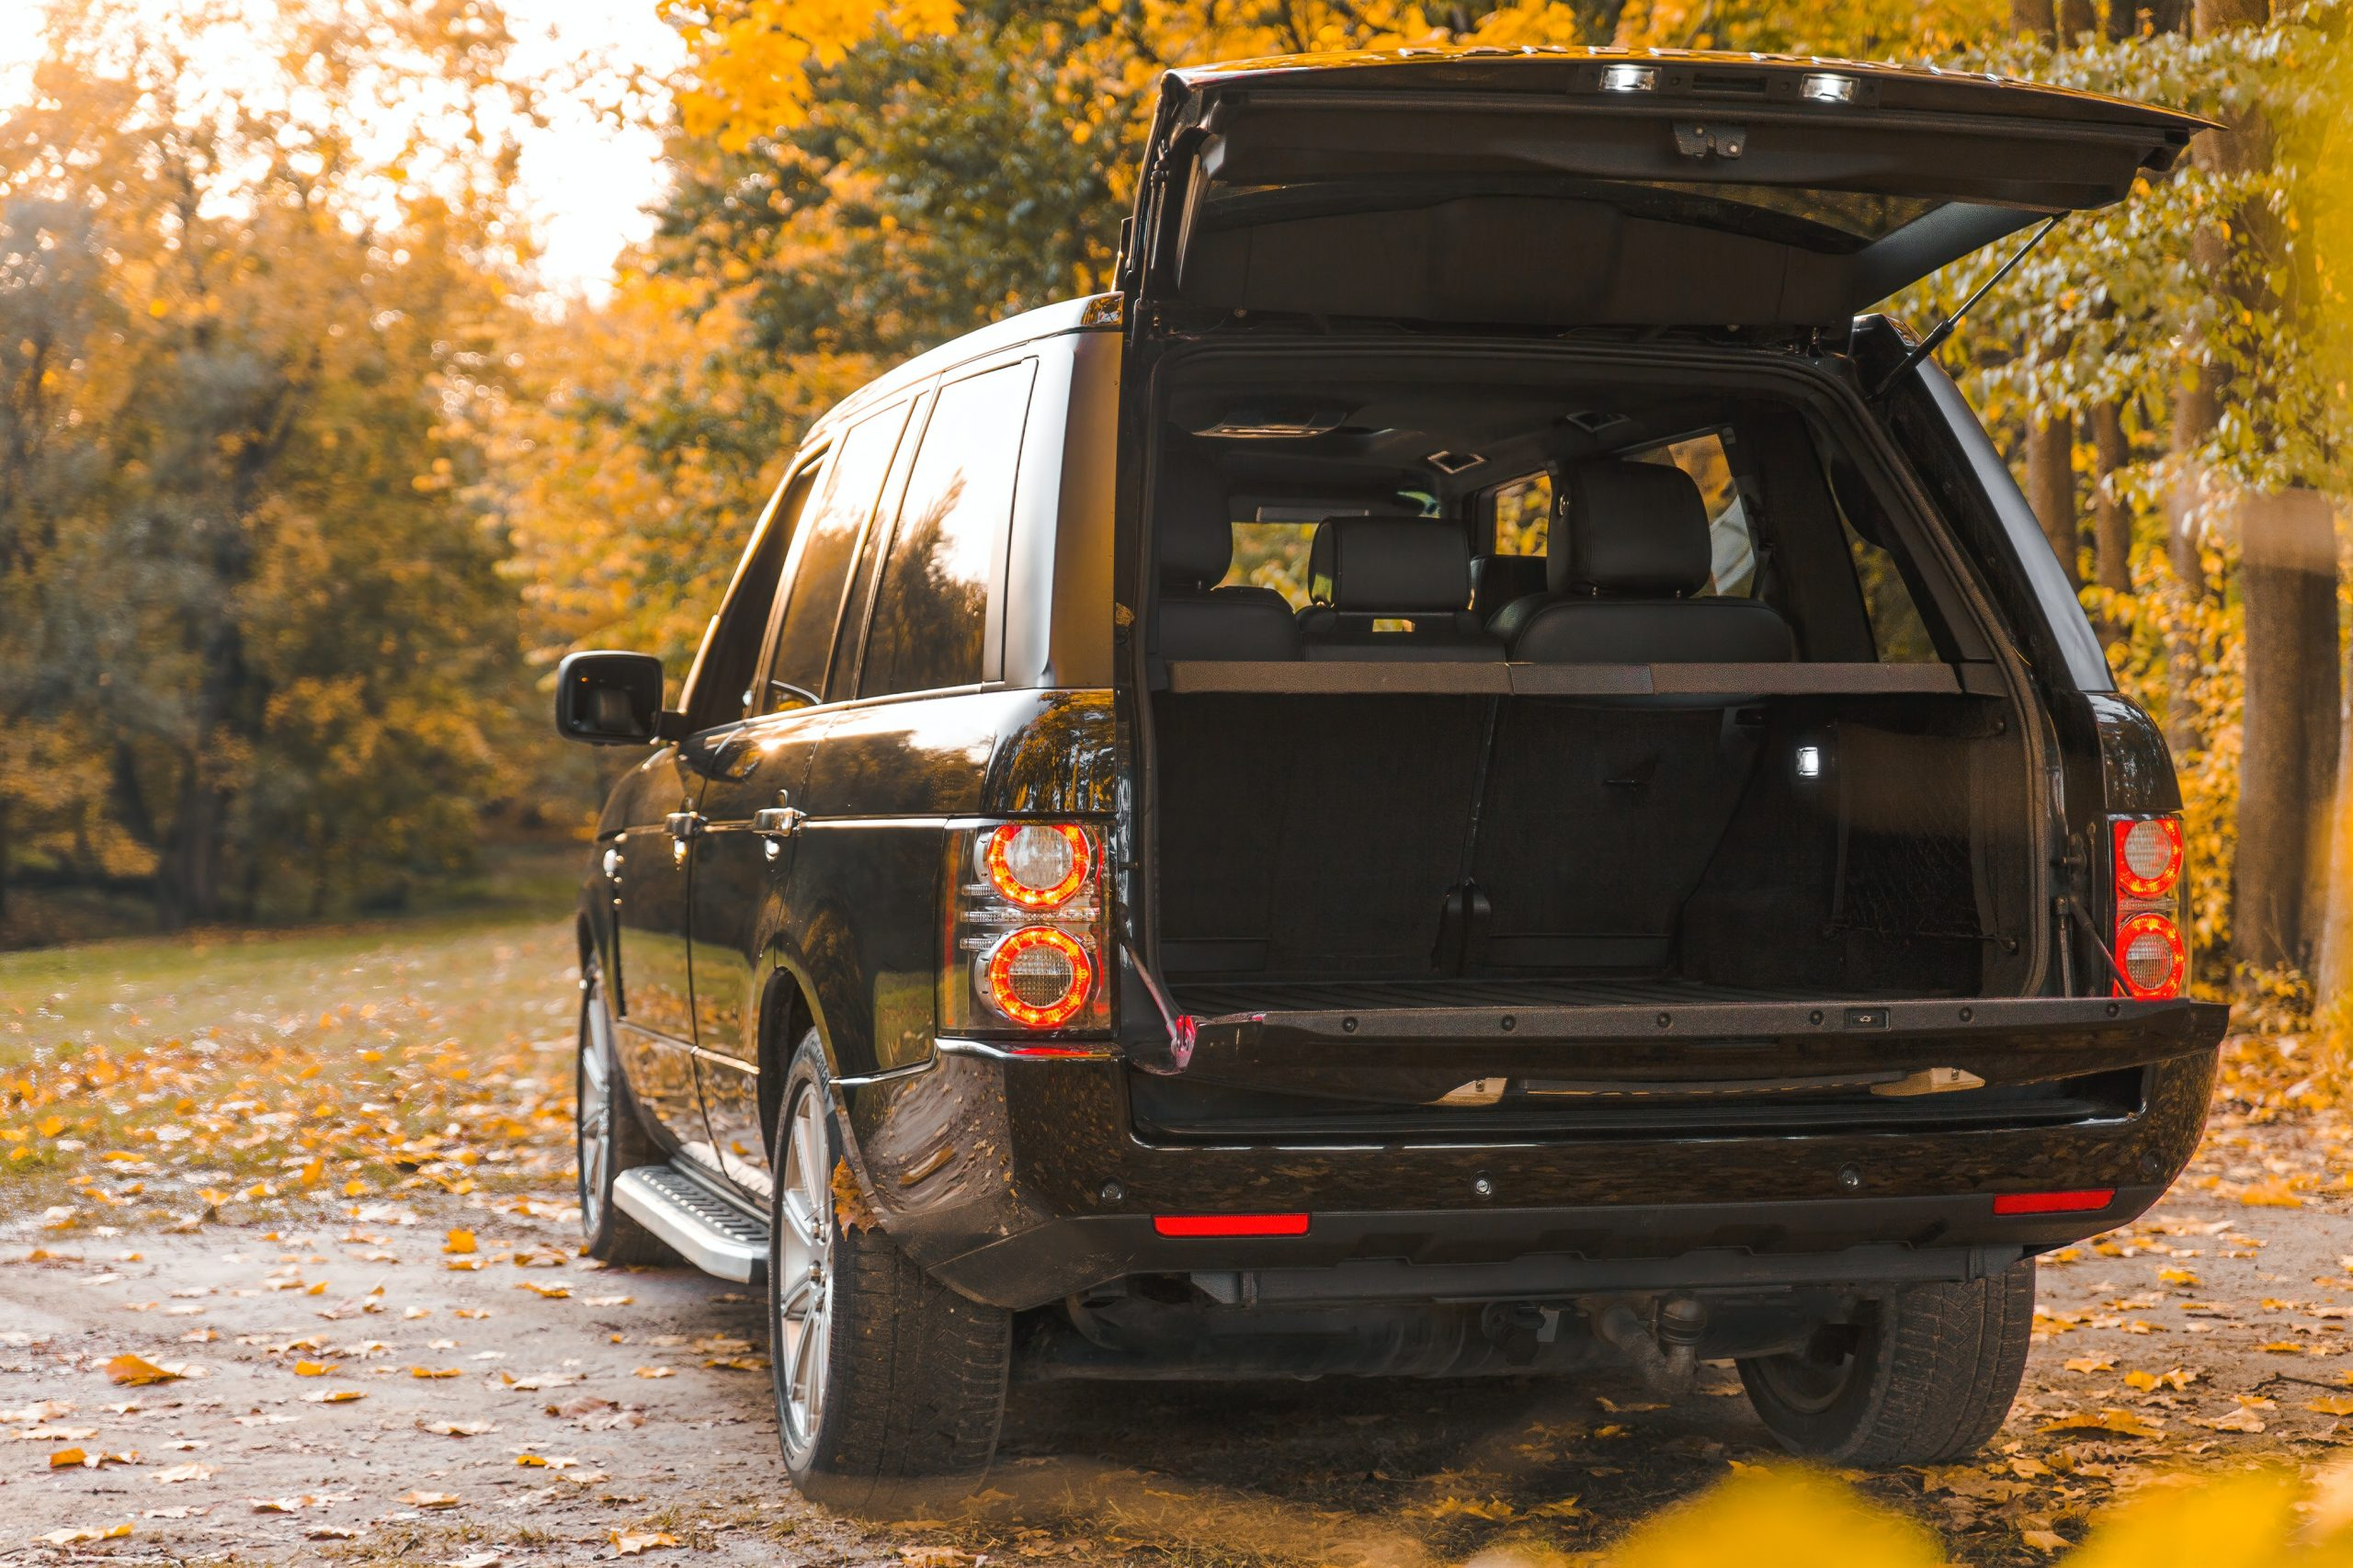 Opened Range Rover car boot